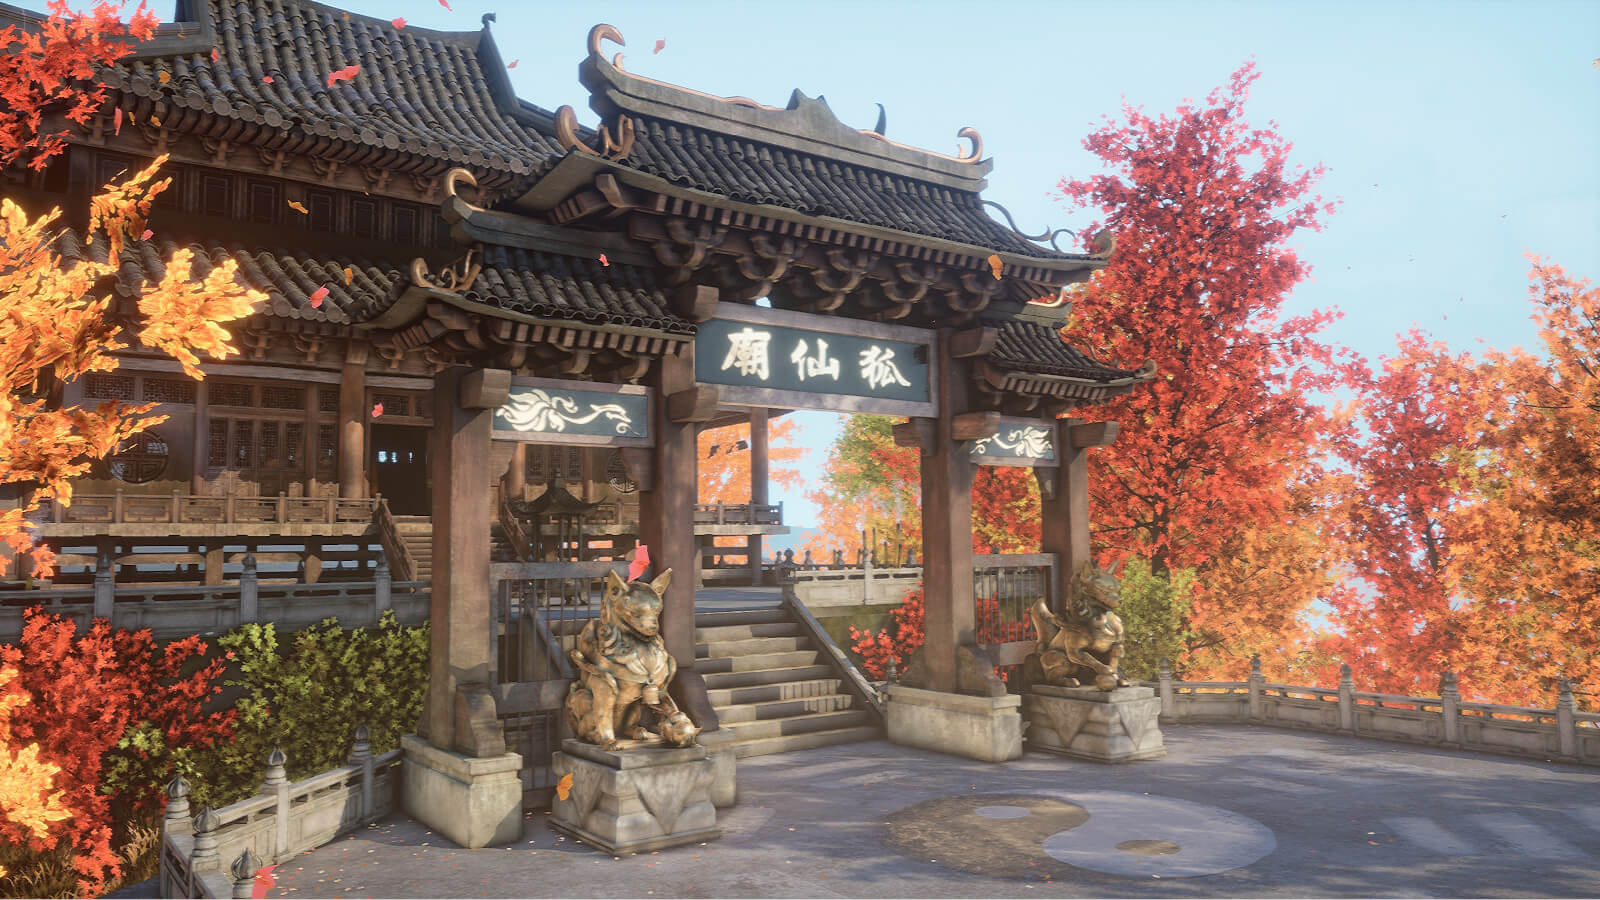 Exterior of a temple in Autumn